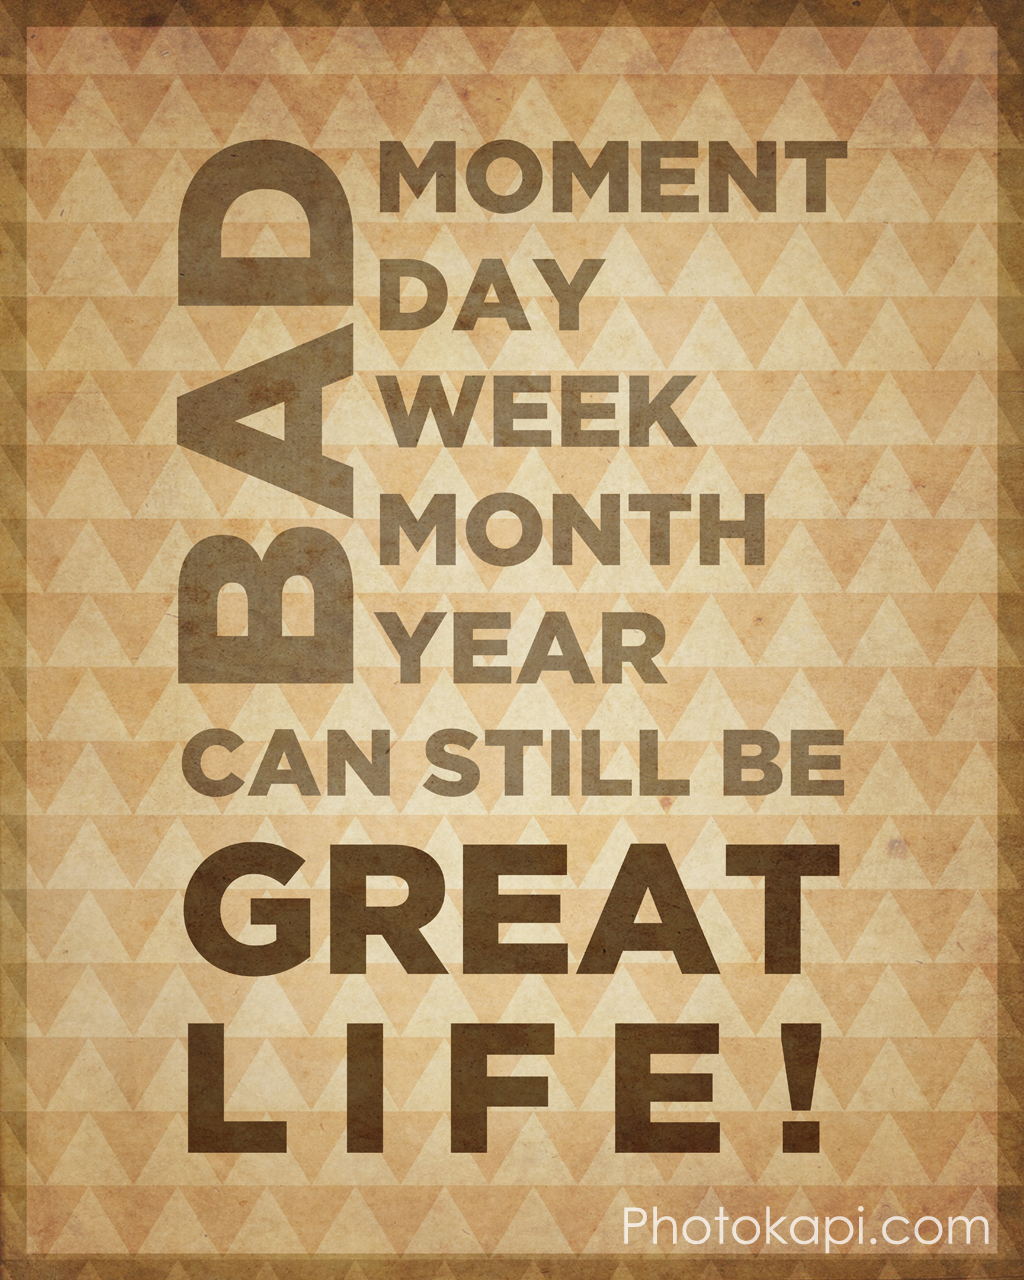 Bad Moment Day Week Month Year can still be Great Life!